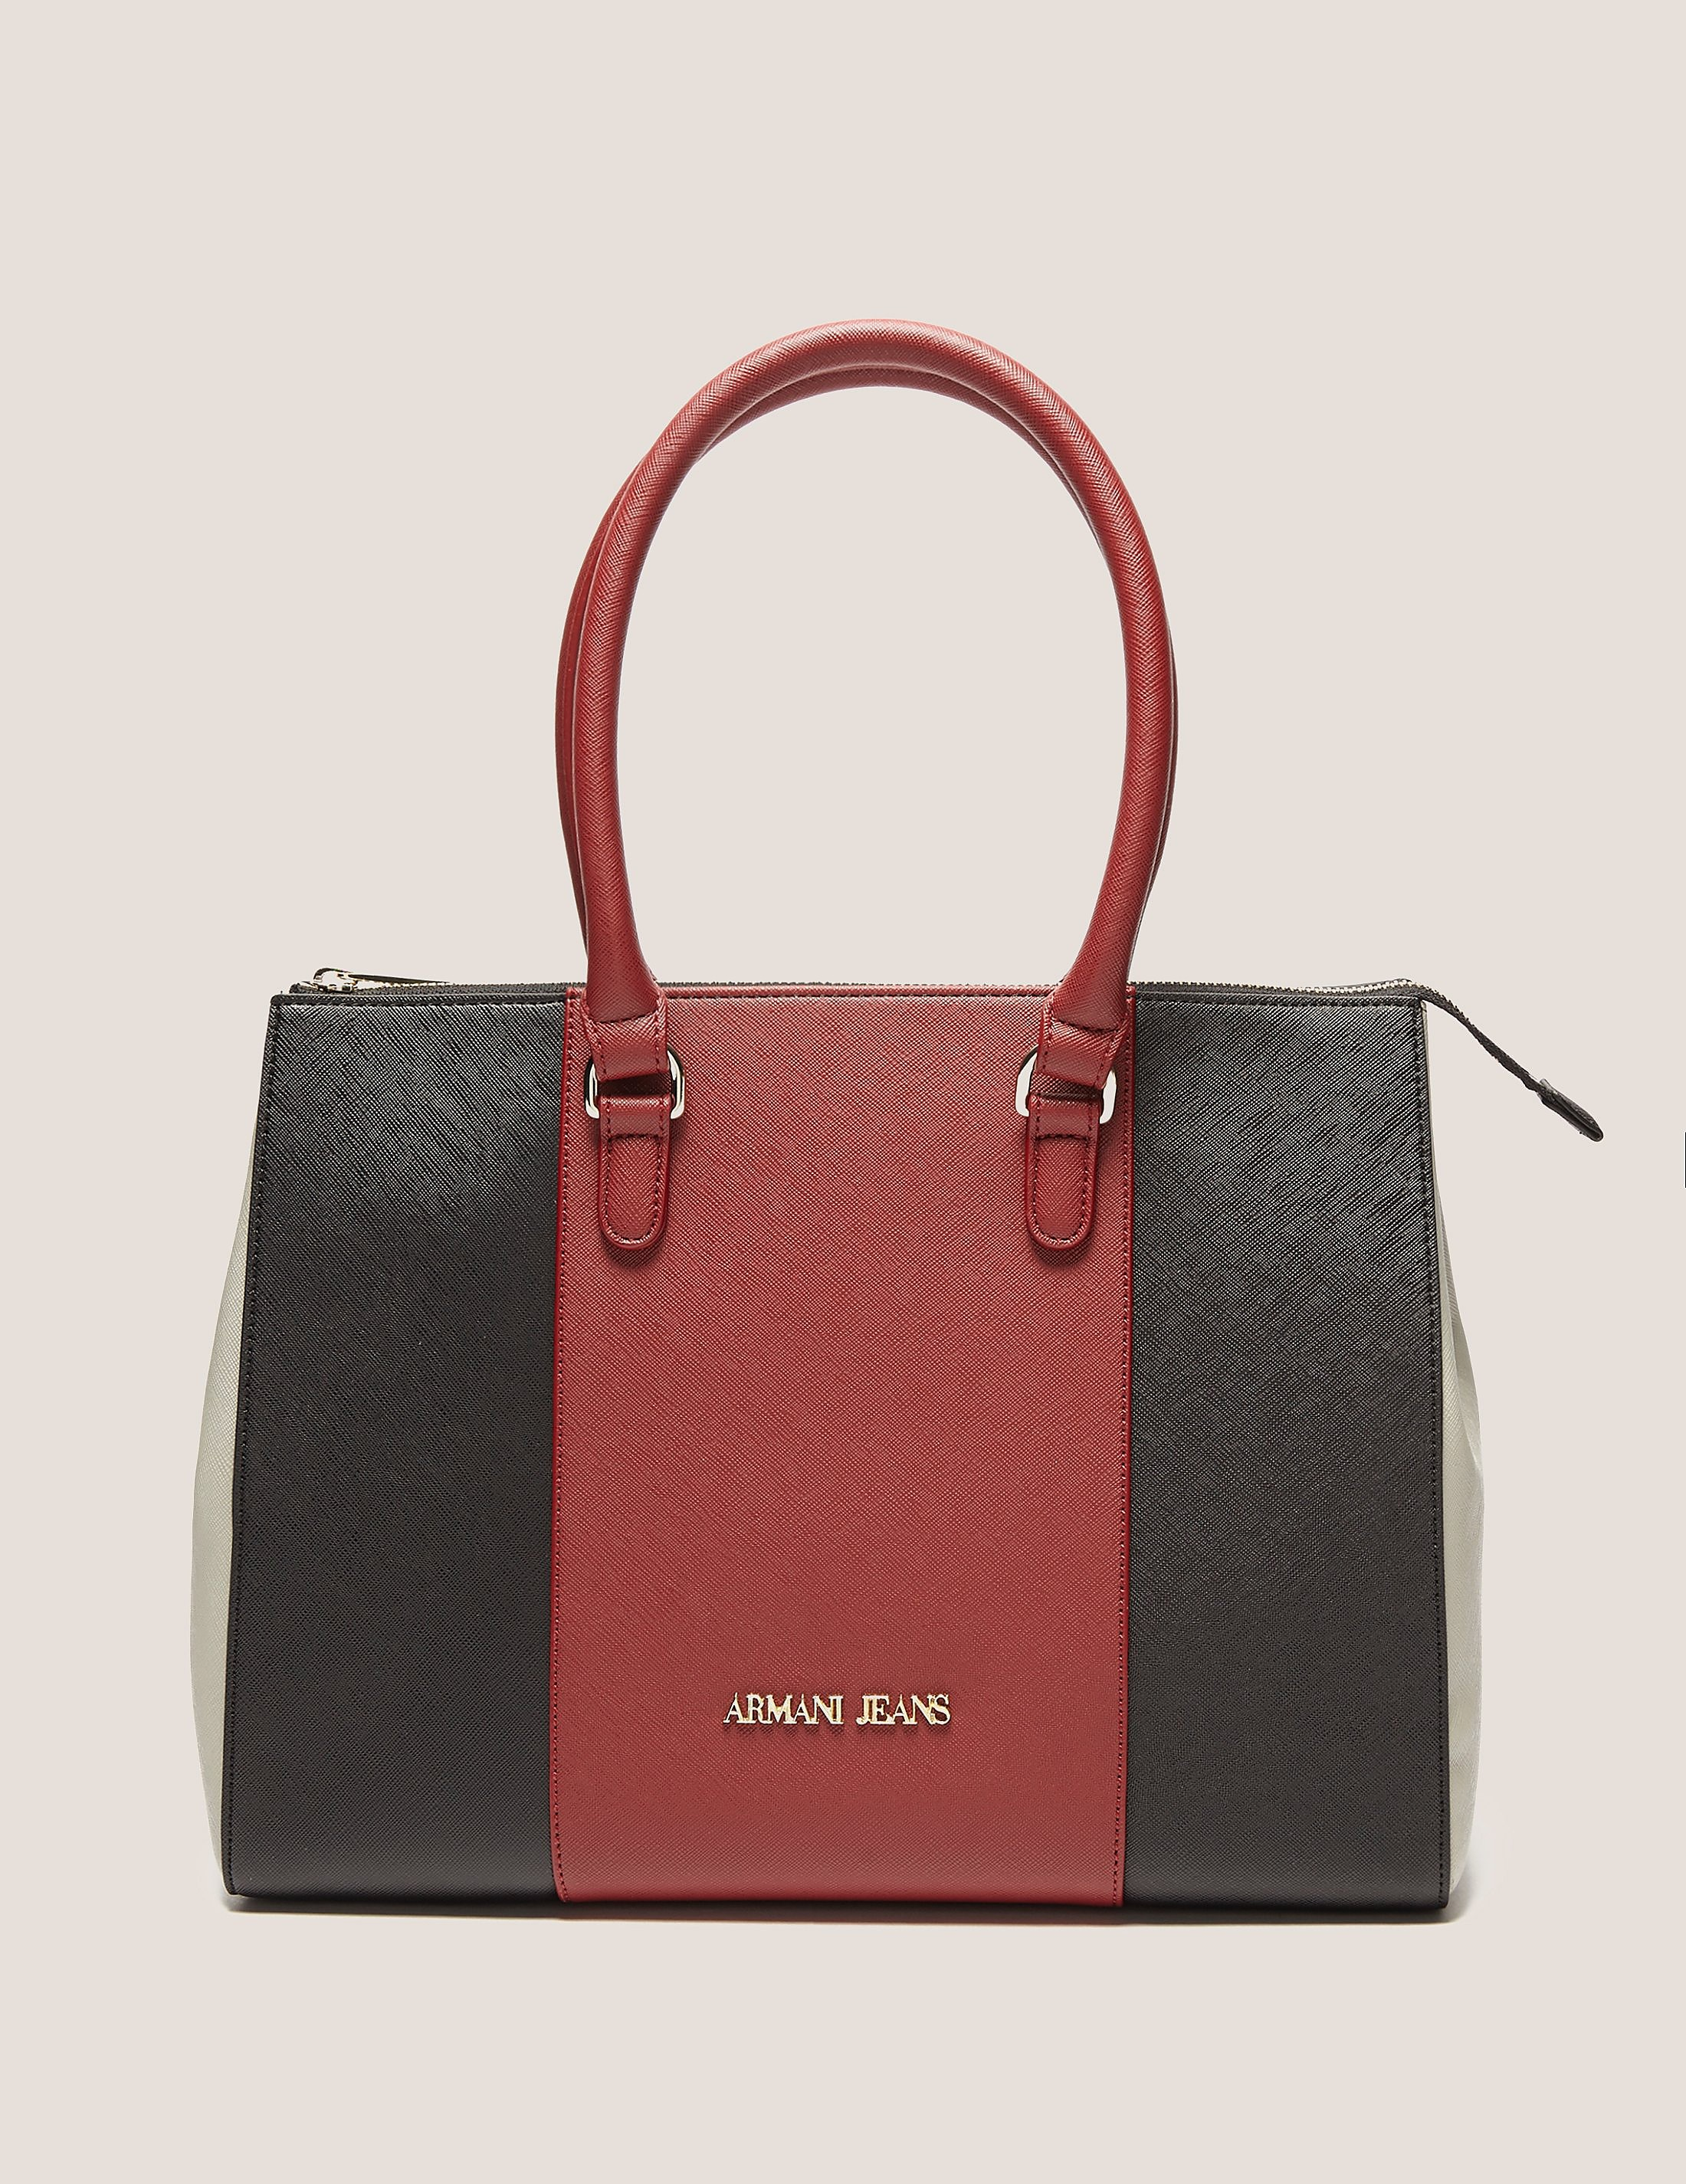 Armani Jeans Colour Block Handbag